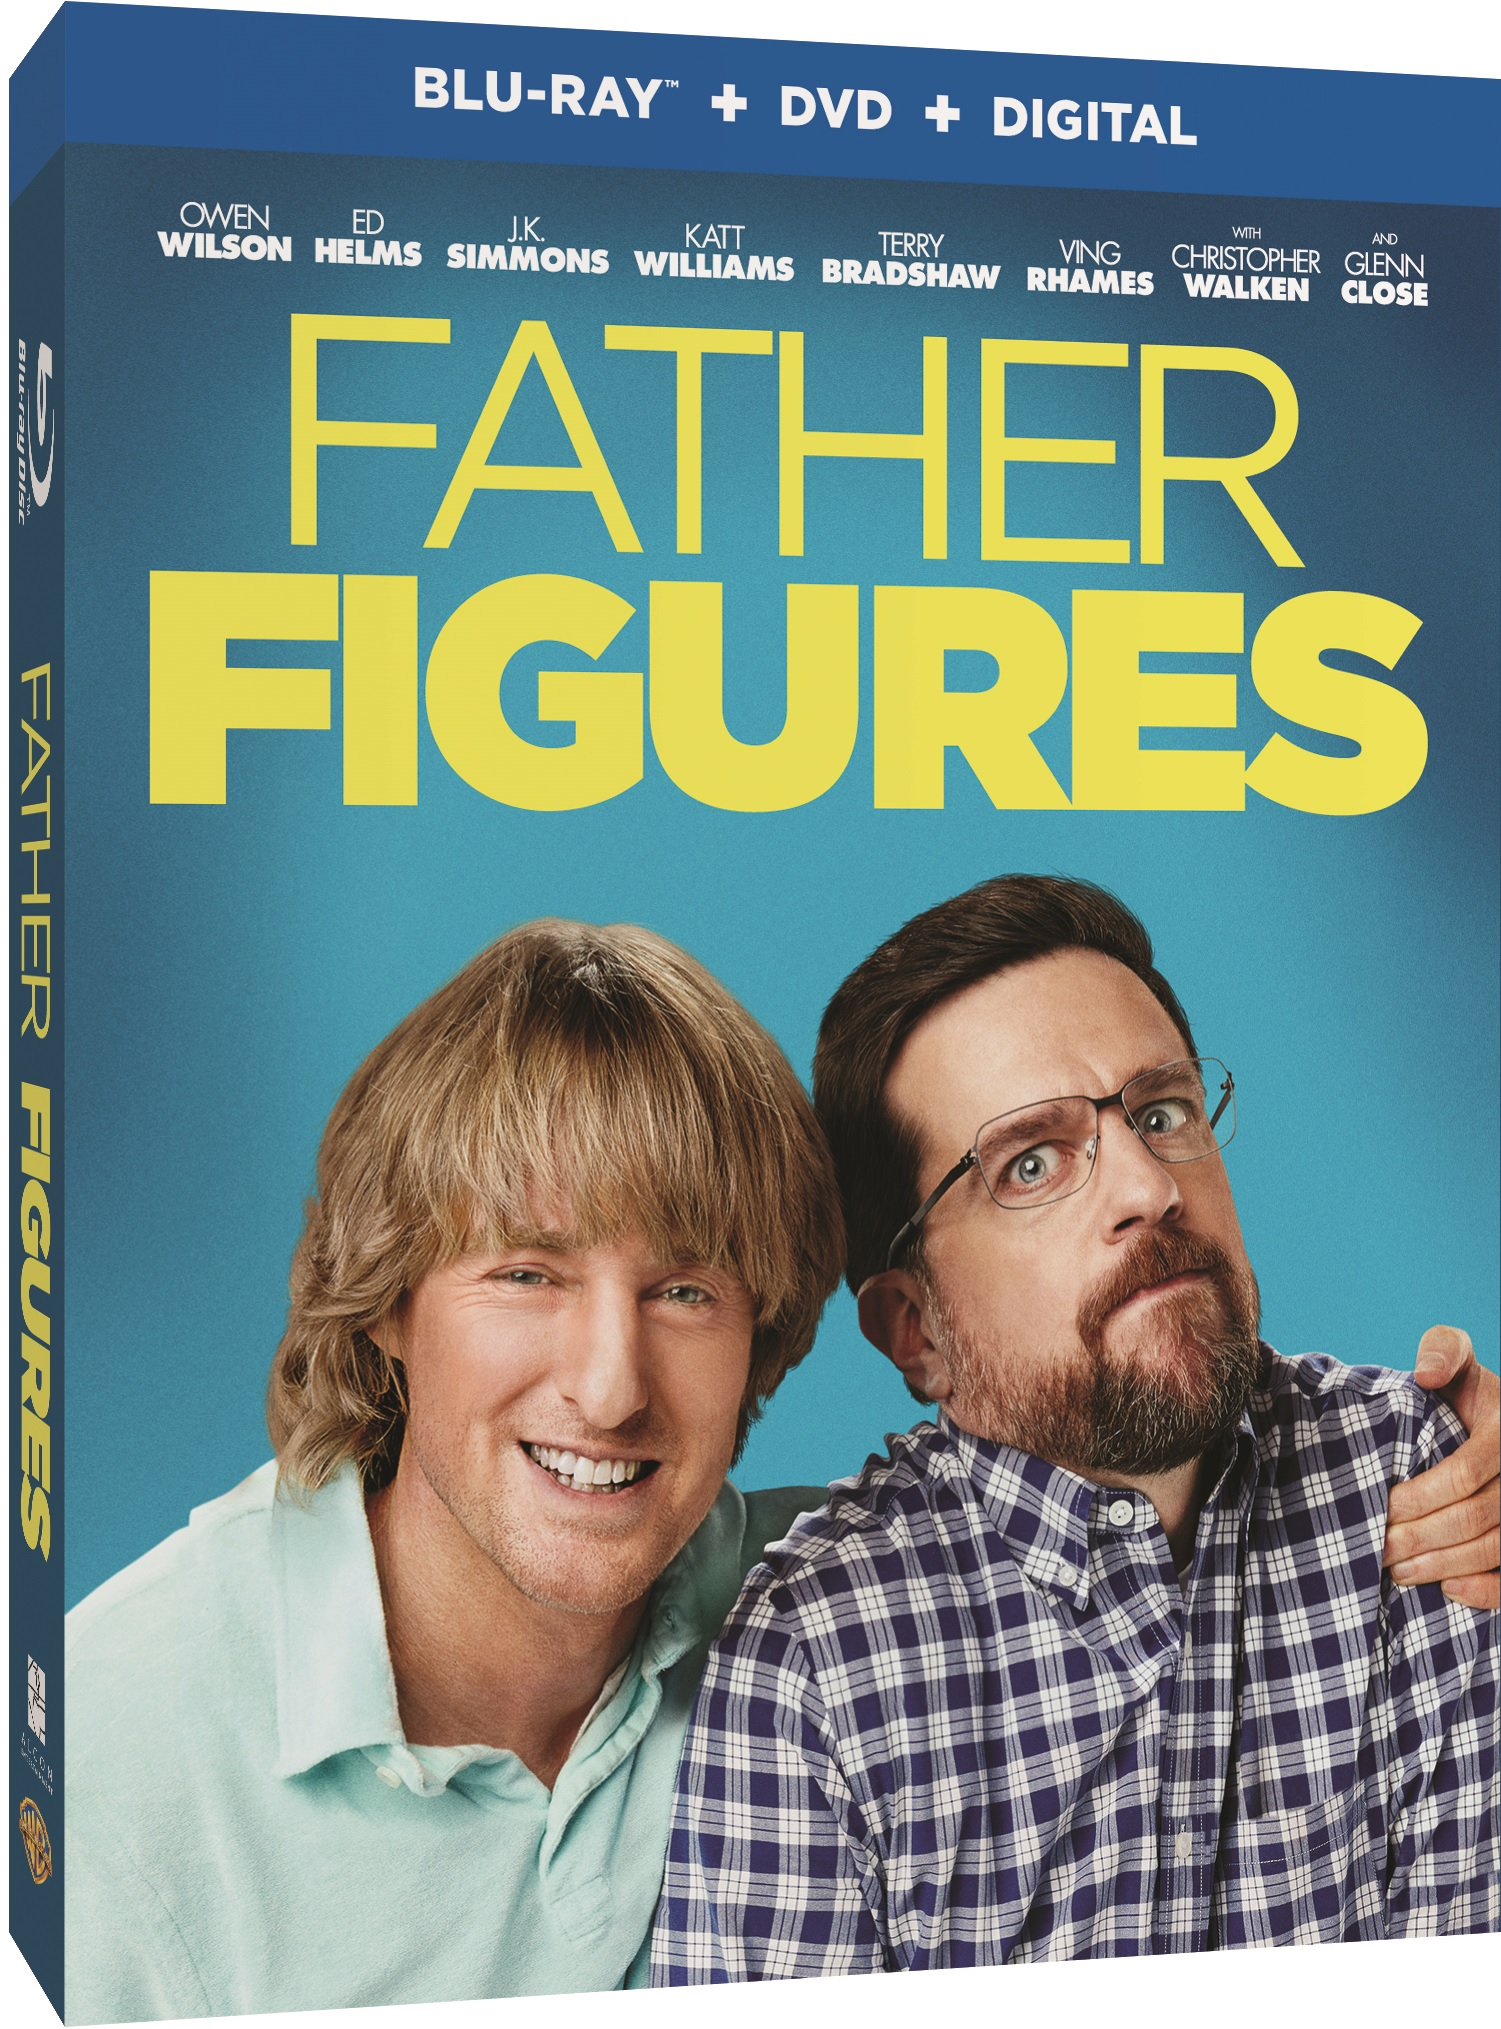 FATHER FIGURES  Blu-ray